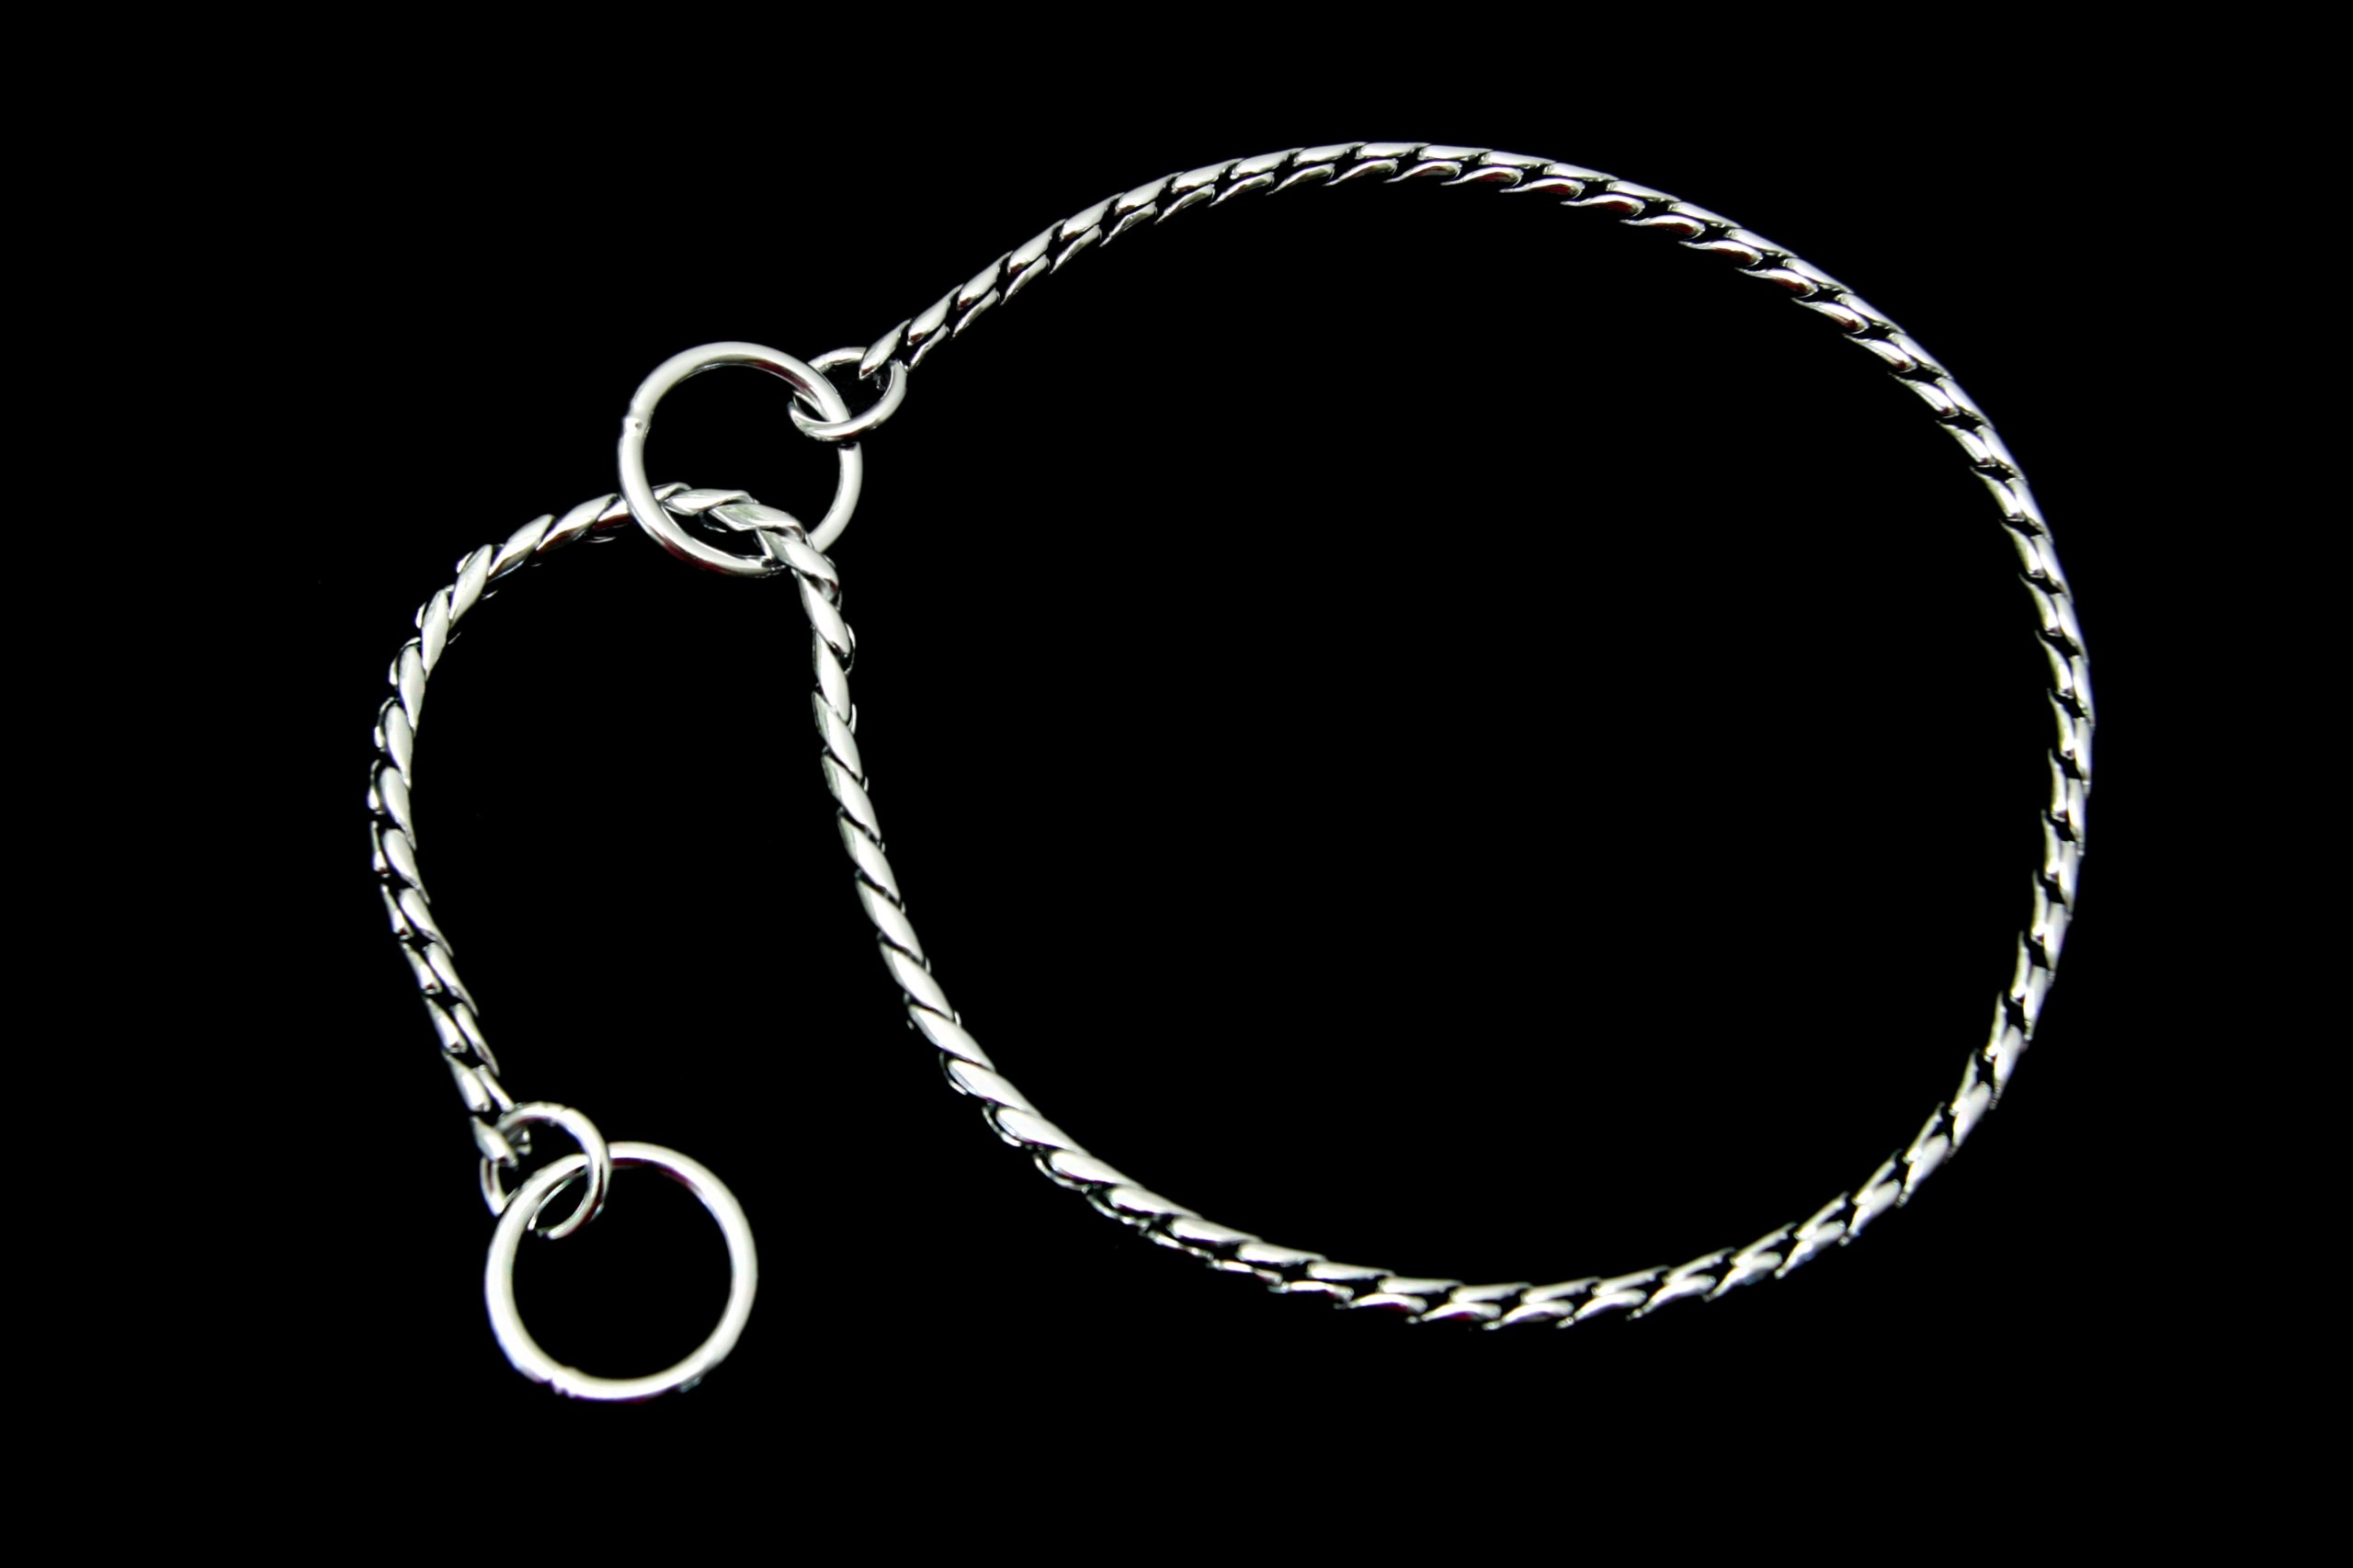 Alvalley Snake Show Chain for Dogs Thickness 5,5 mm x 24 in